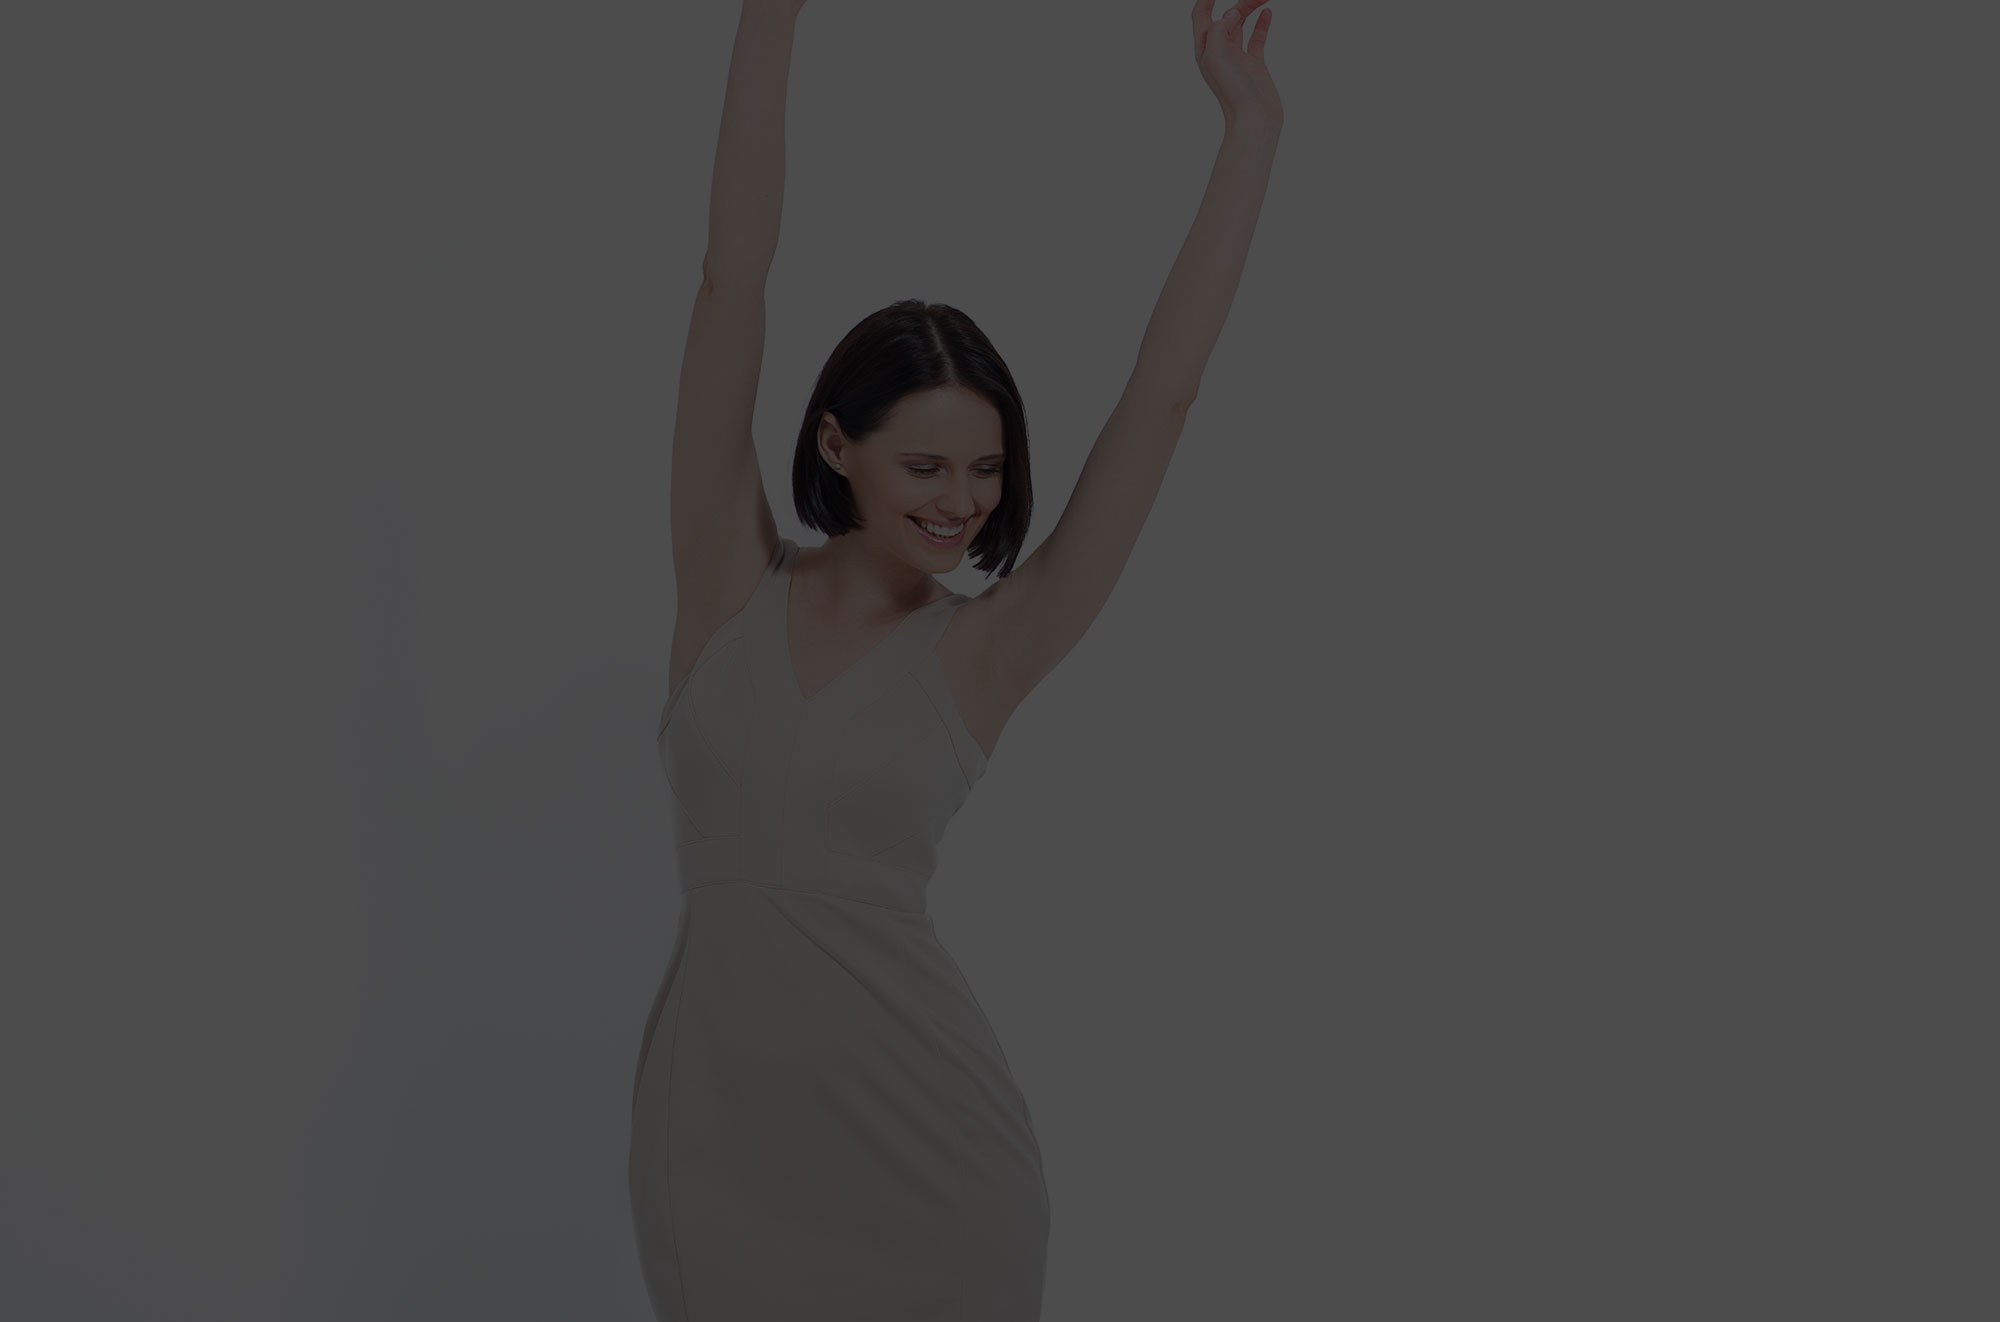 Woman smiling with hands up in the air.